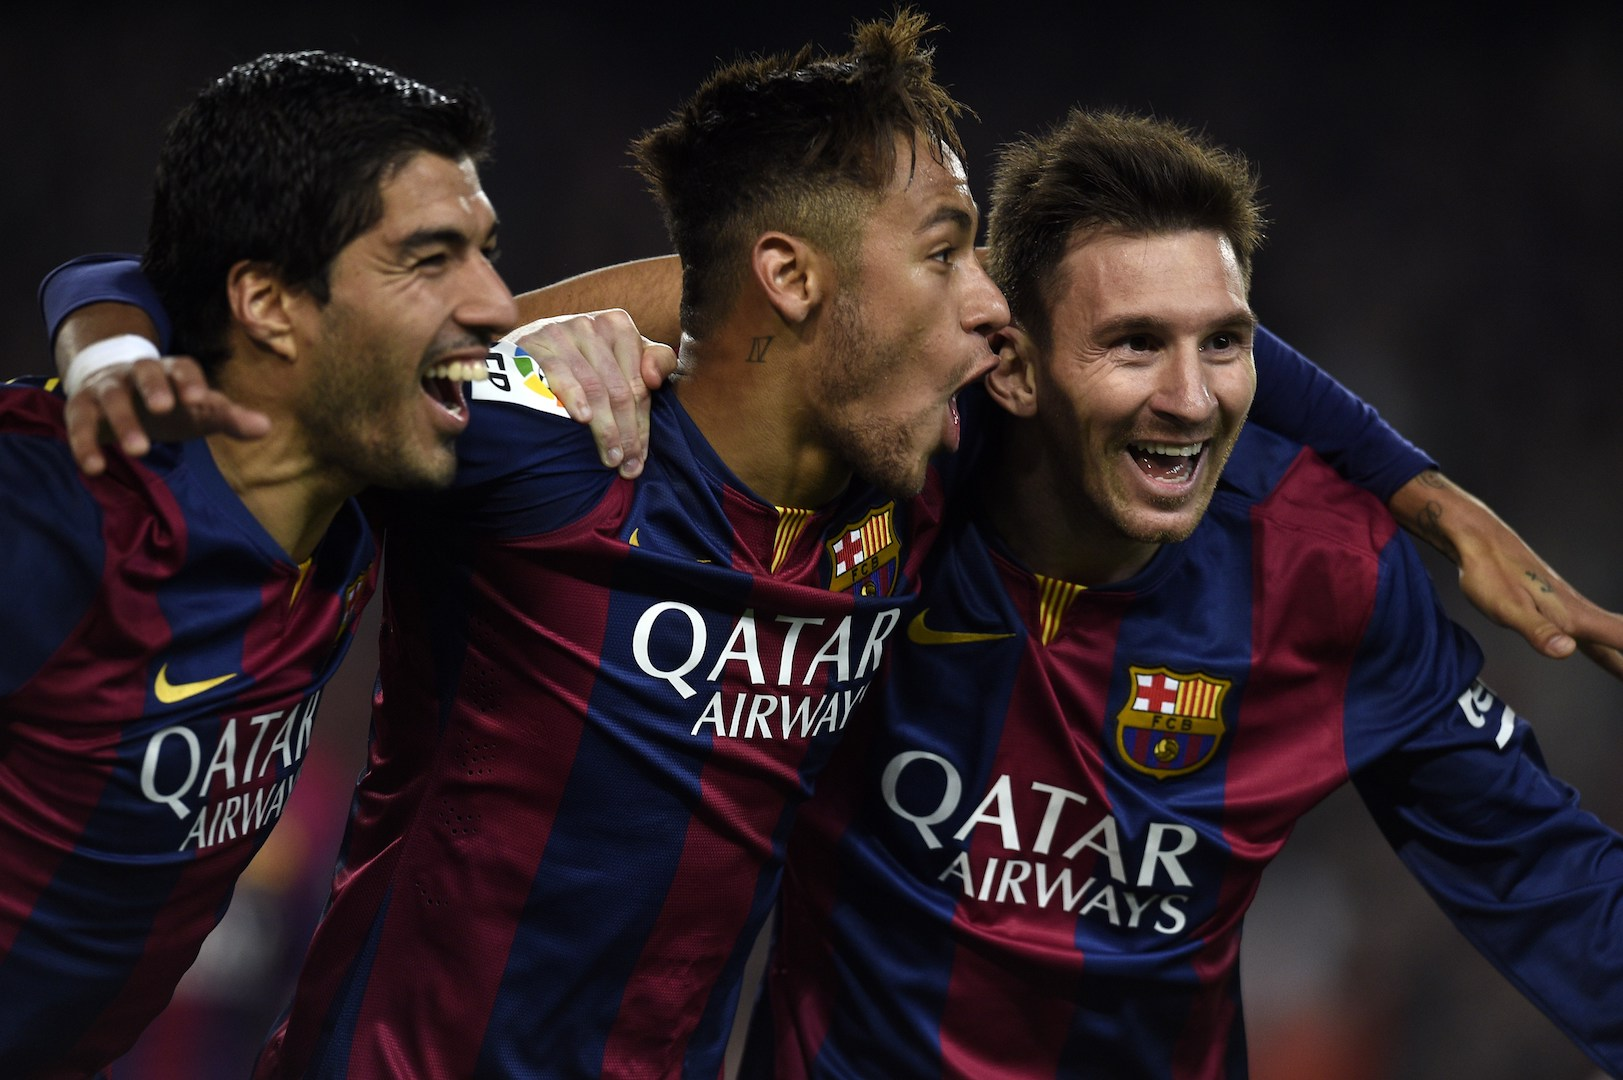 Barcelona's Argentinian forward Lionel Messi, Barcelona's Brazilian forward Neymar da Silva Santos Junior and Barcelona's Uruguayan forward Luis Suarez celebrate during the Spanish league football match FC Barcelona vs Club Atletico de Madrid at the Camp Nou stadium in Barcelona on January 11, 2015. AFP PHOTO/ LLUIS GENE (Photo credit should read LLUIS GENE/AFP/Getty Images)